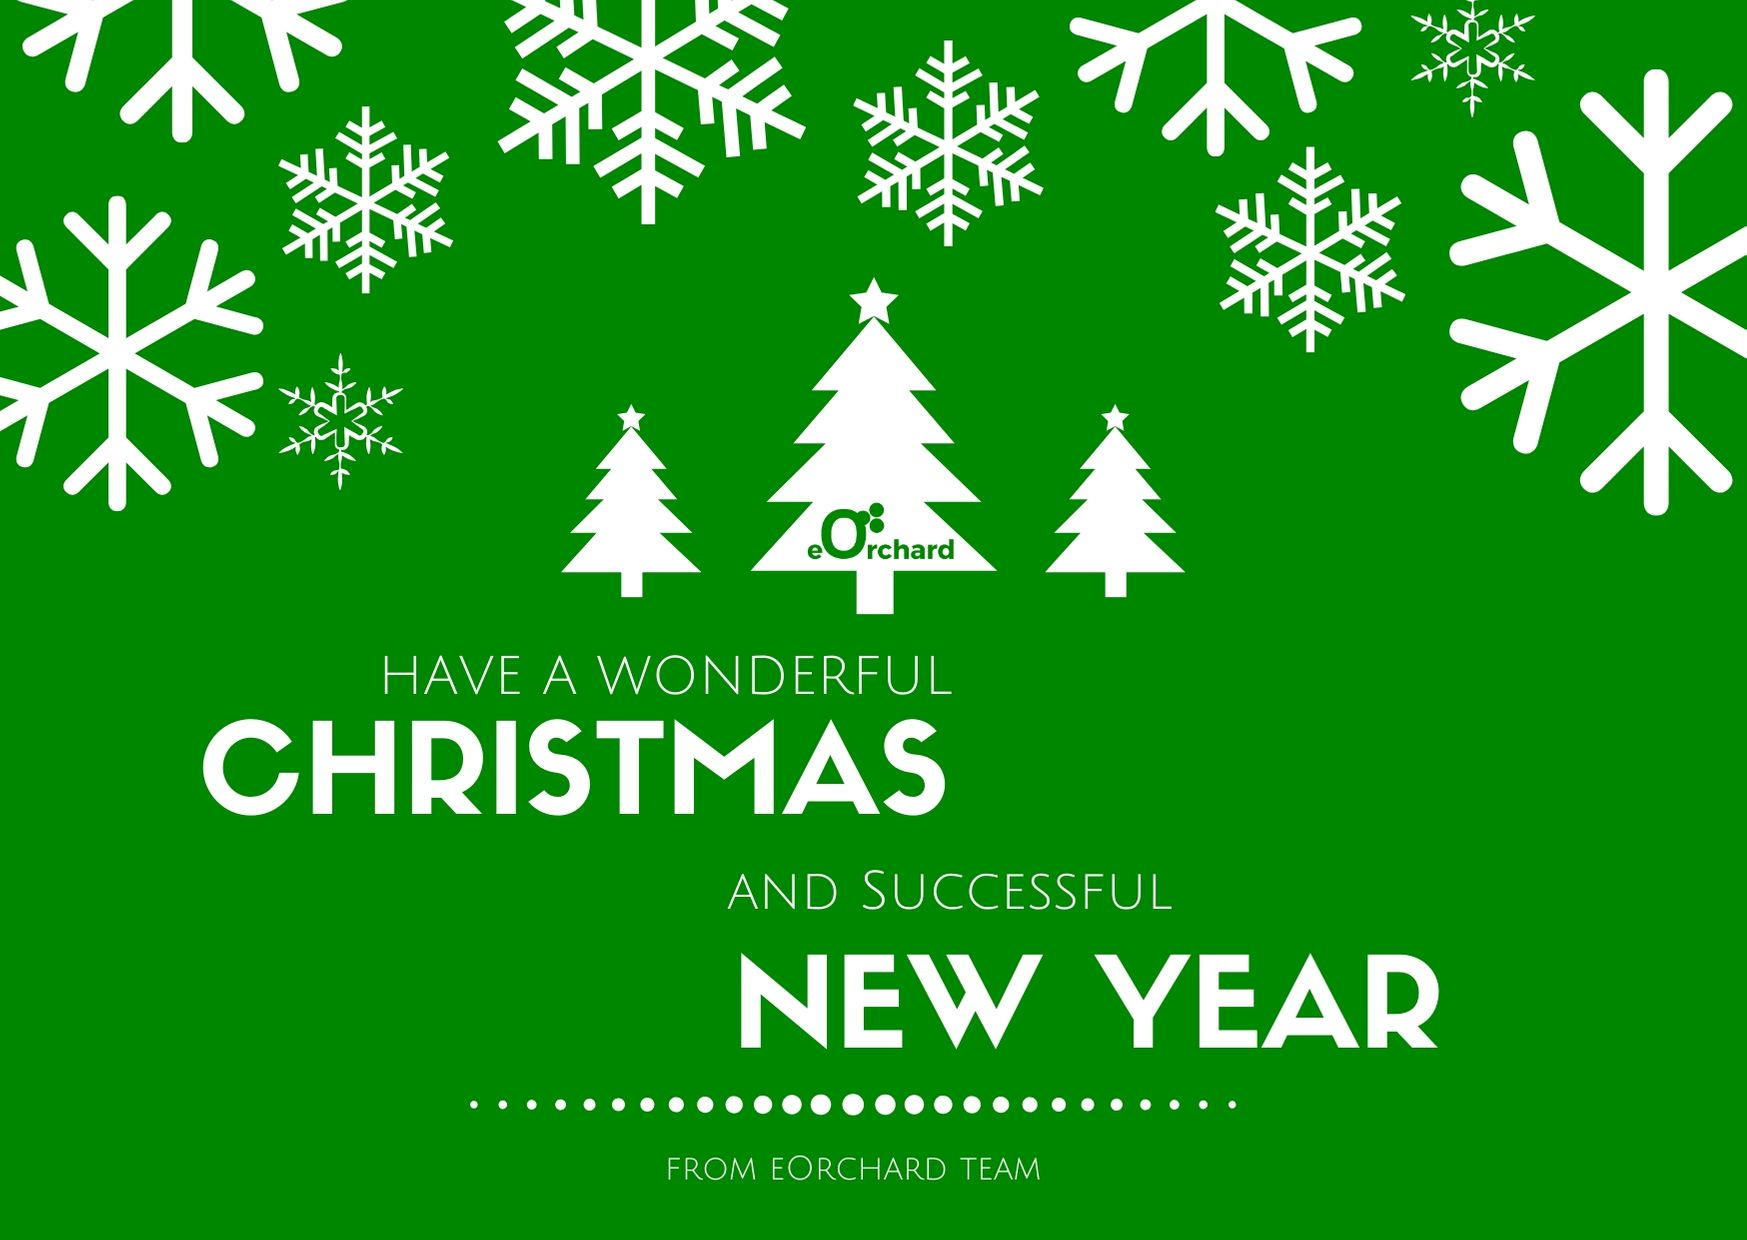 eOrchard wish you Merry Christmas and Happy New Year